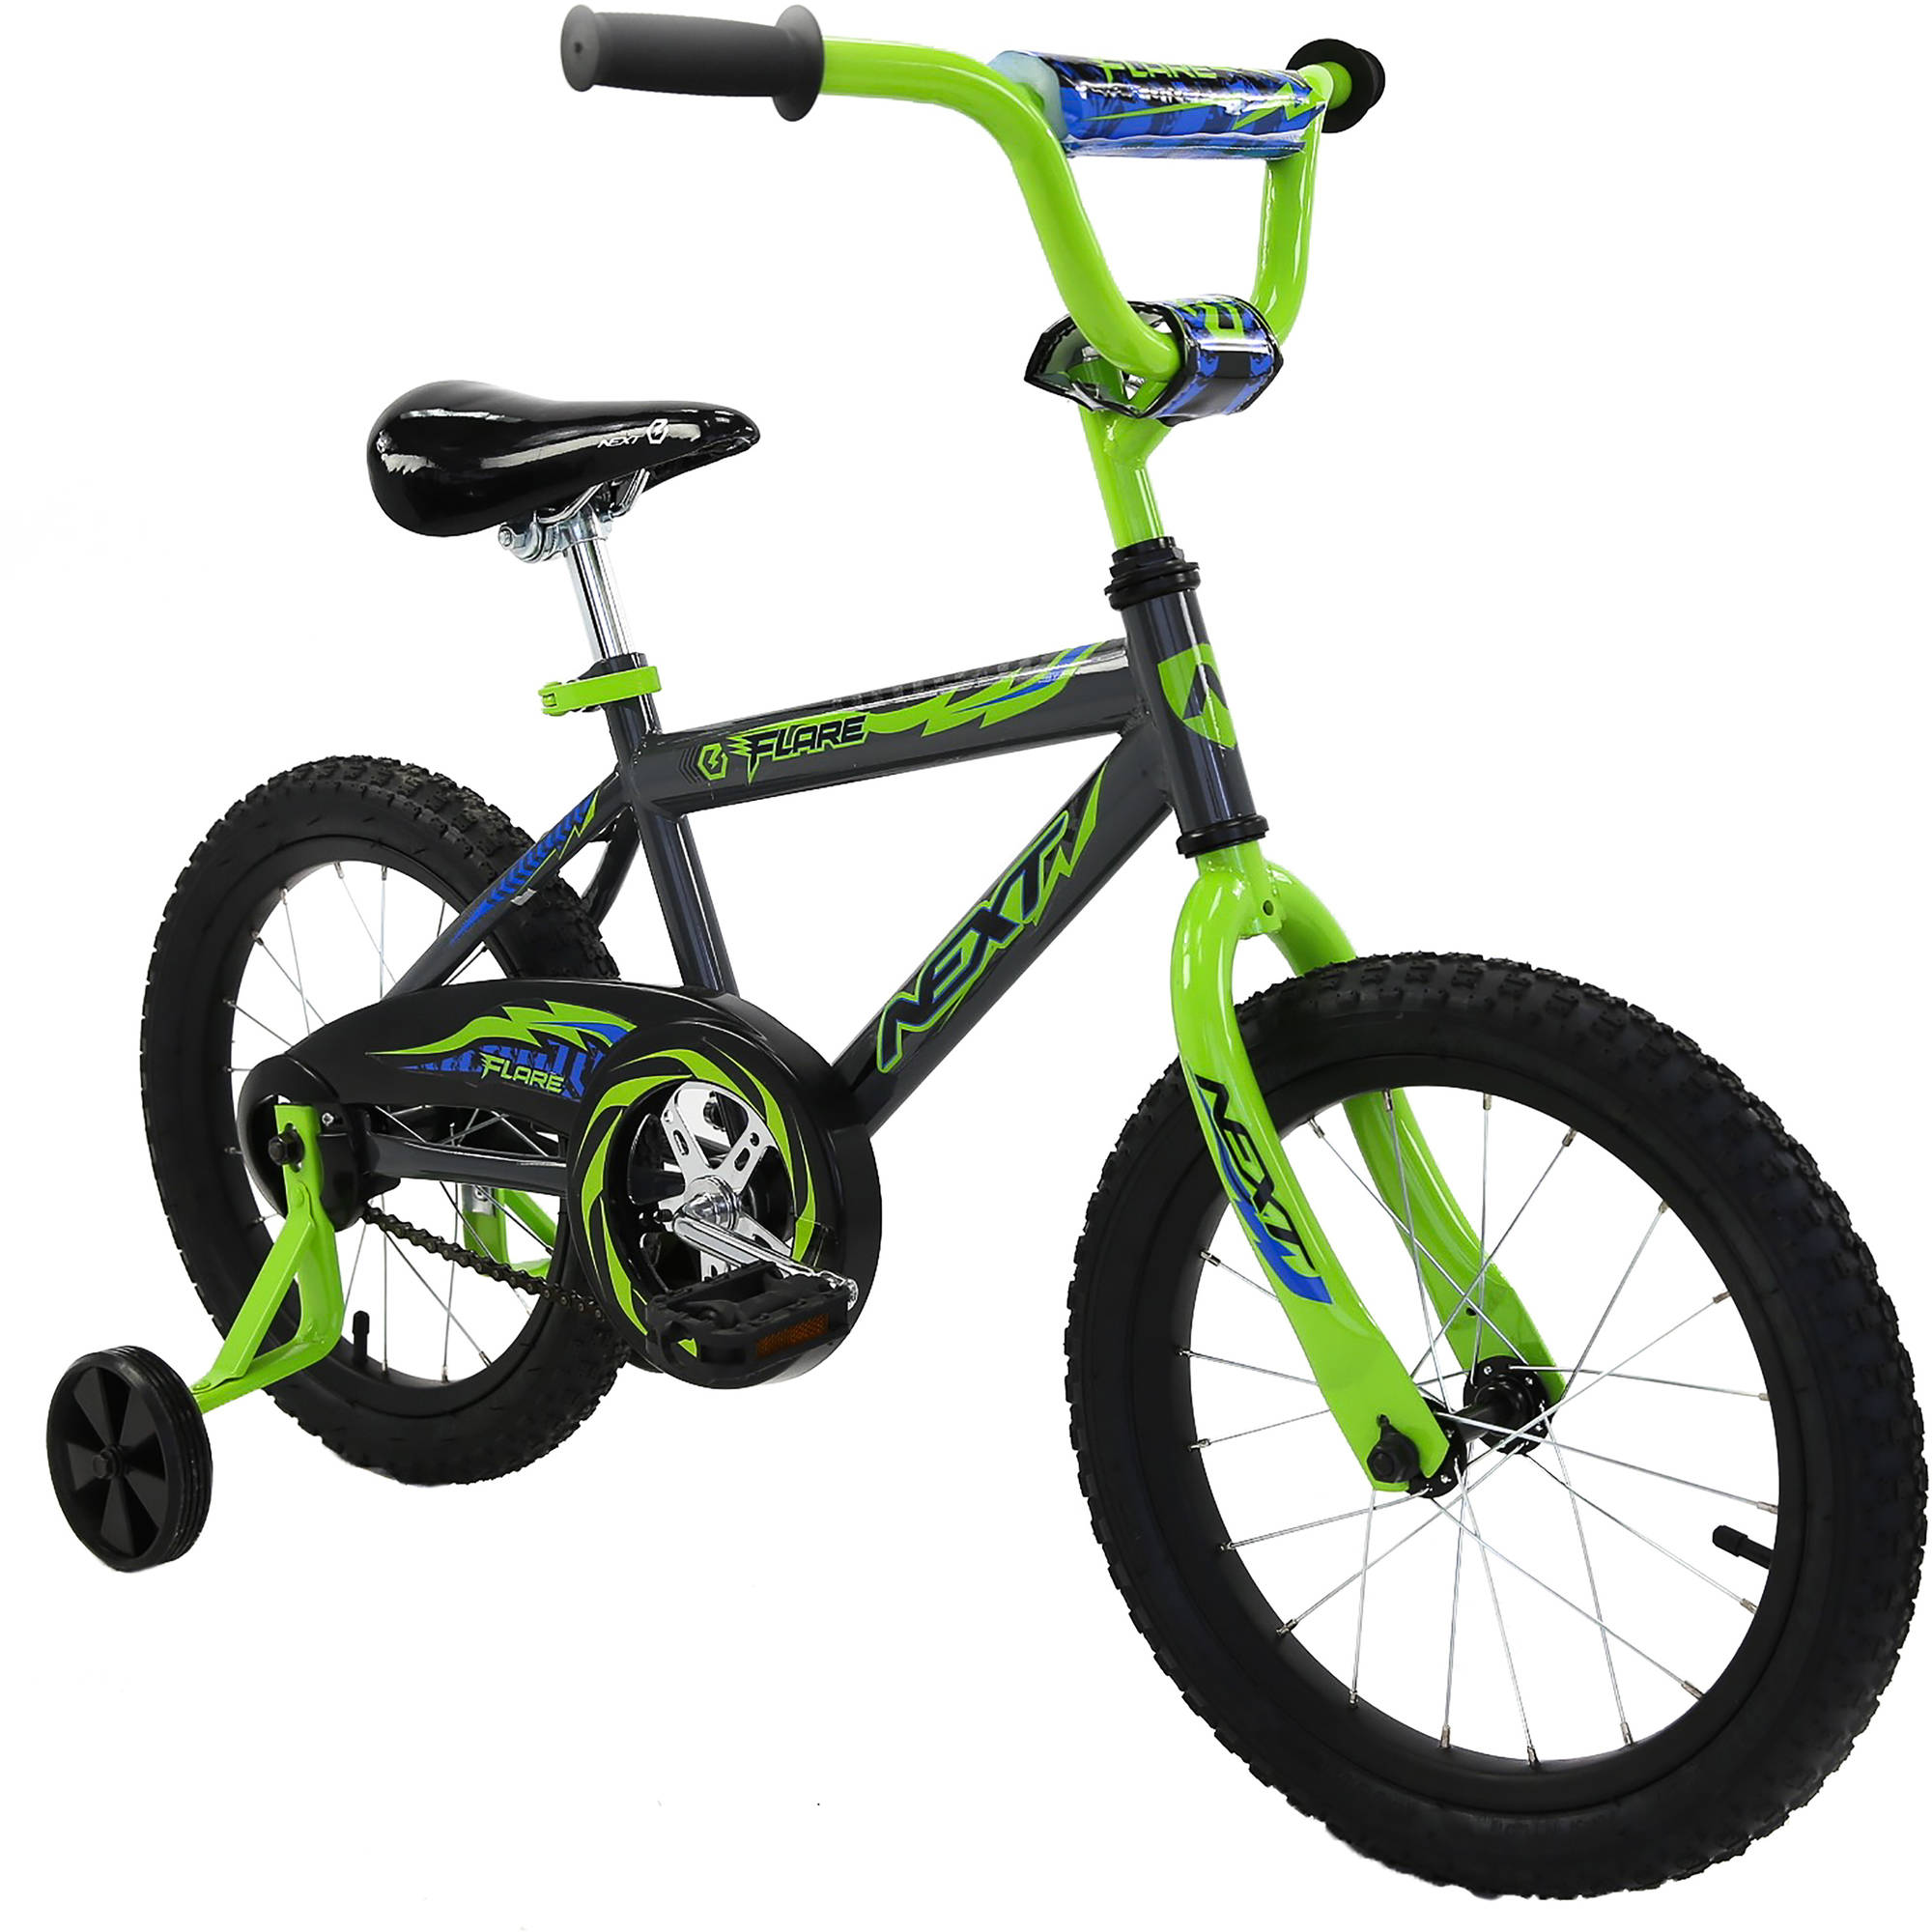 "16"" NEXT FLARE BMX Bicycle"